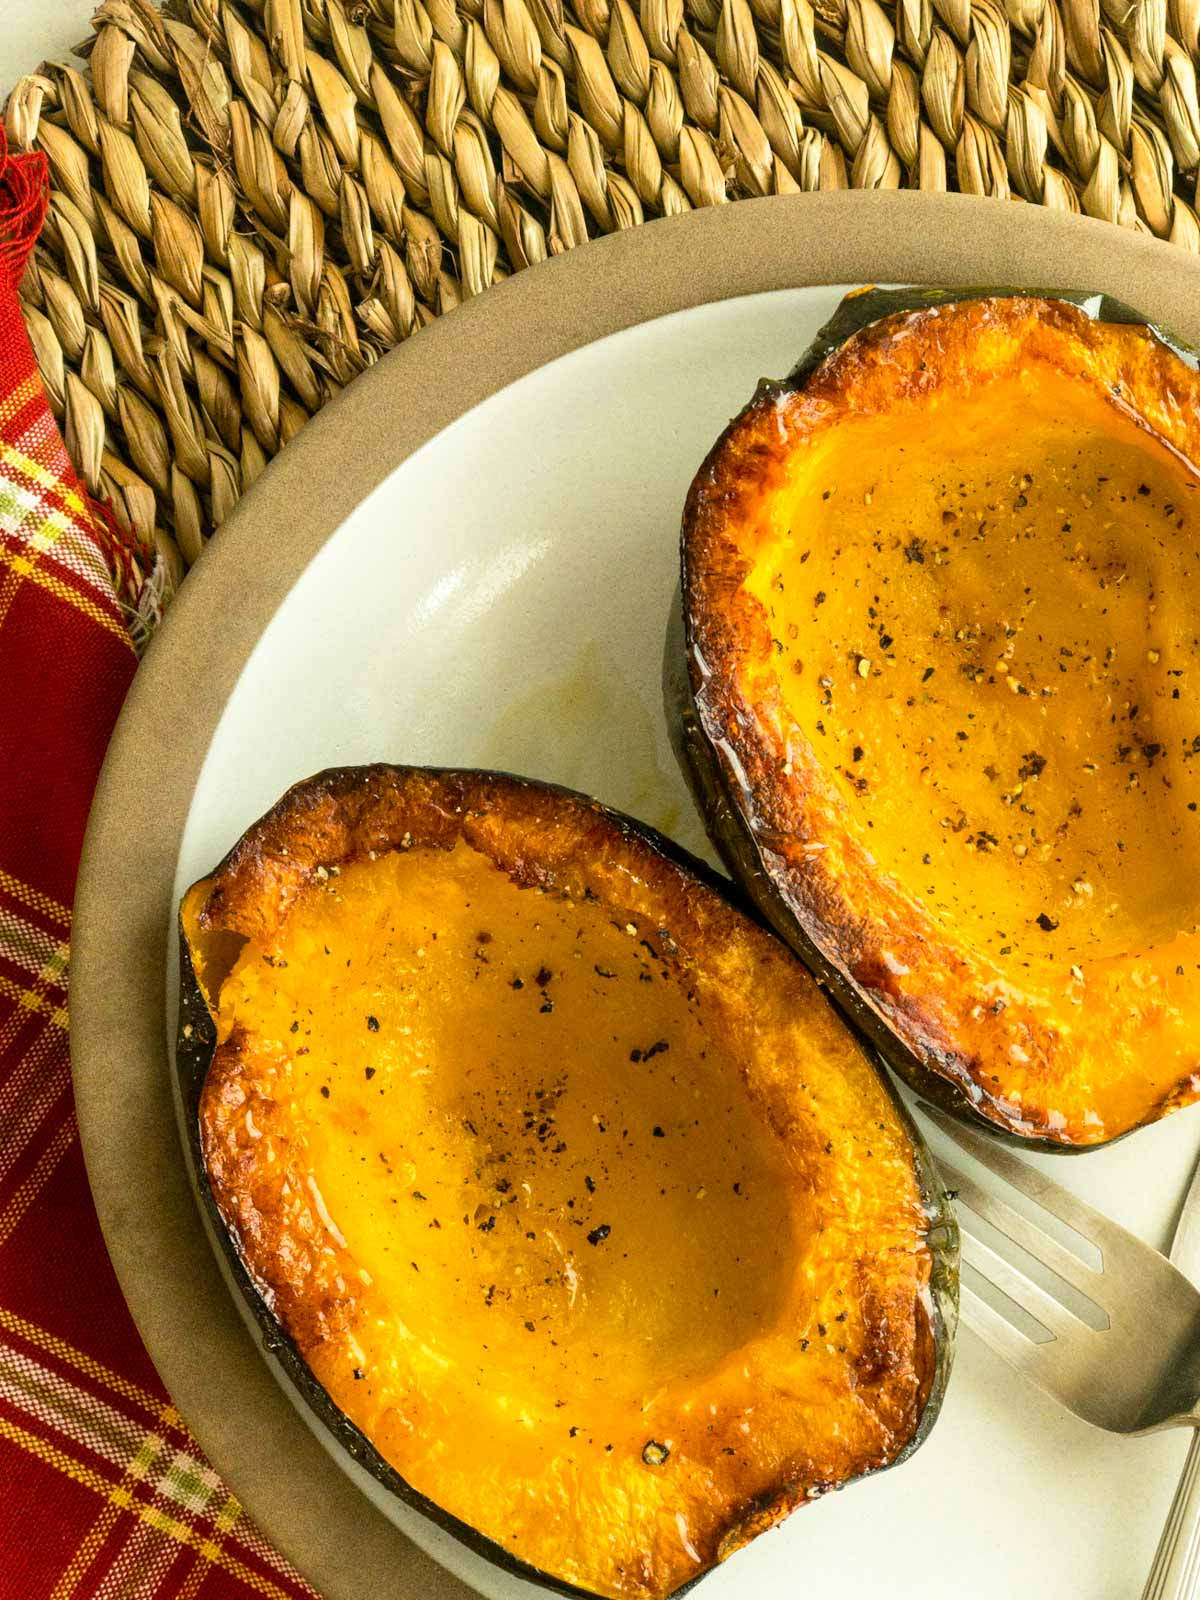 Roasted acorn squash on brown plate